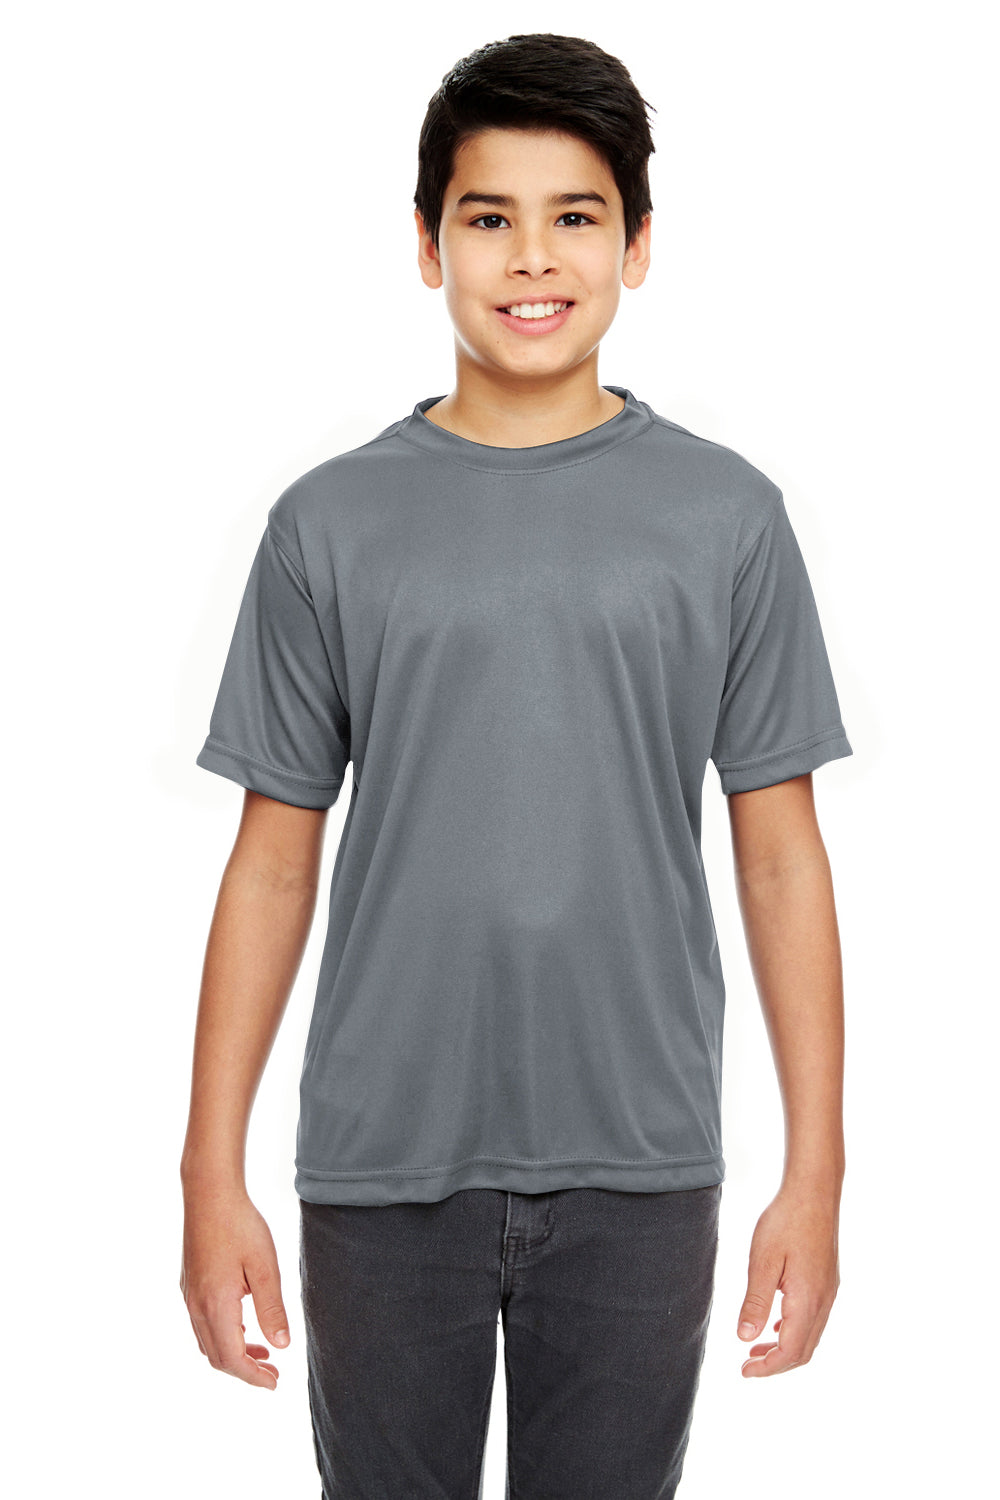 UltraClub 8620Y Youth Cool & Dry Performance Moisture Wicking Short Sleeve Crewneck T-Shirt Charcoal Grey Front